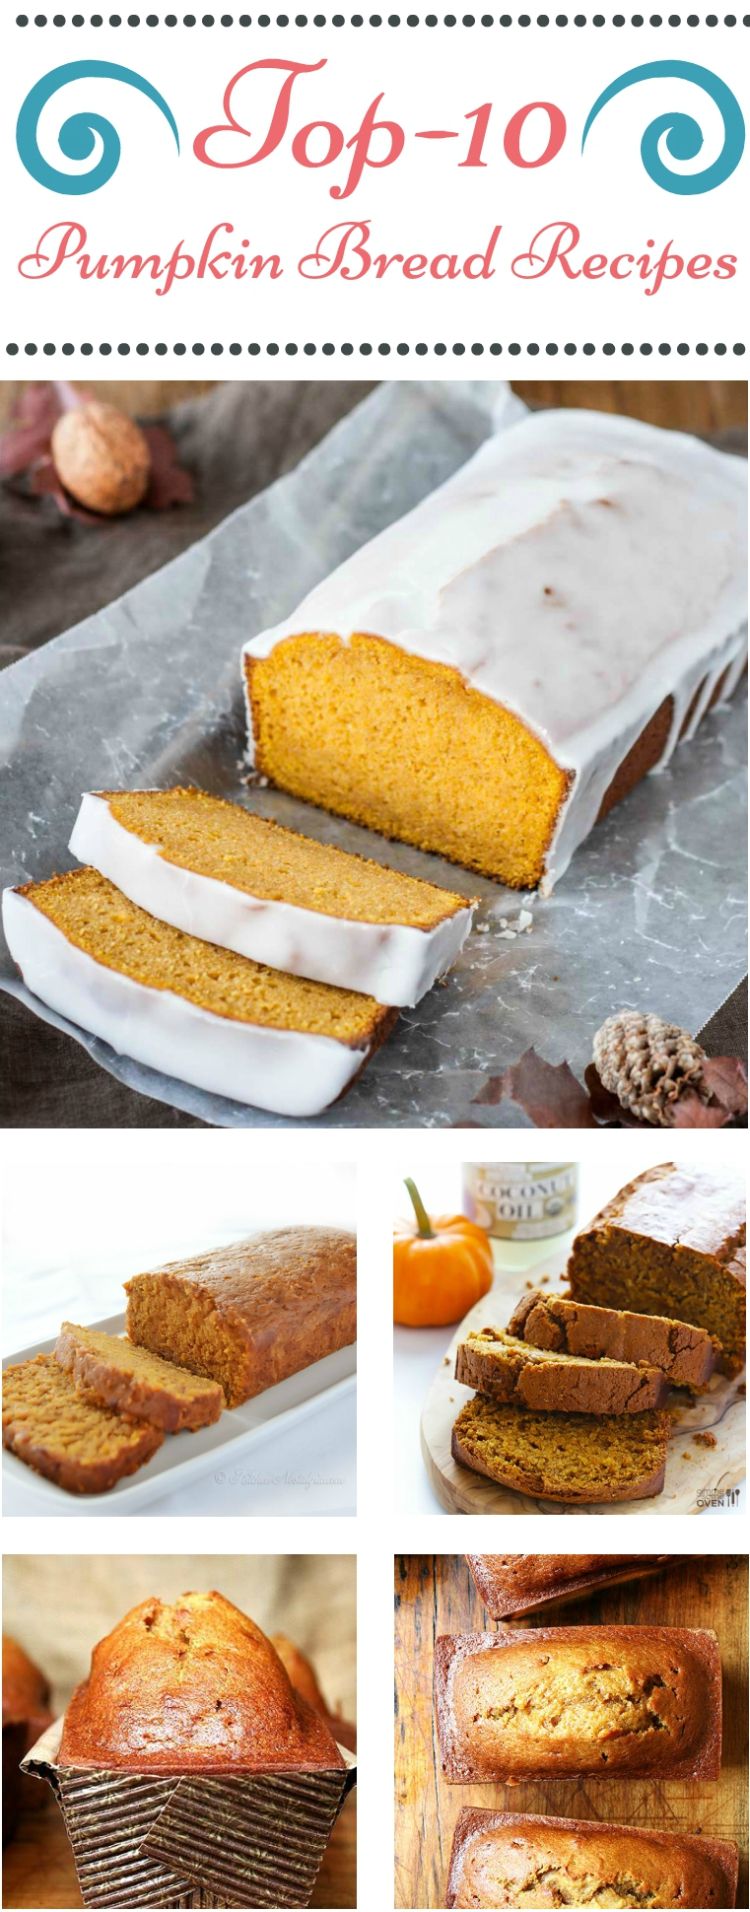 Top-10 Pumpkin Bread Recipes